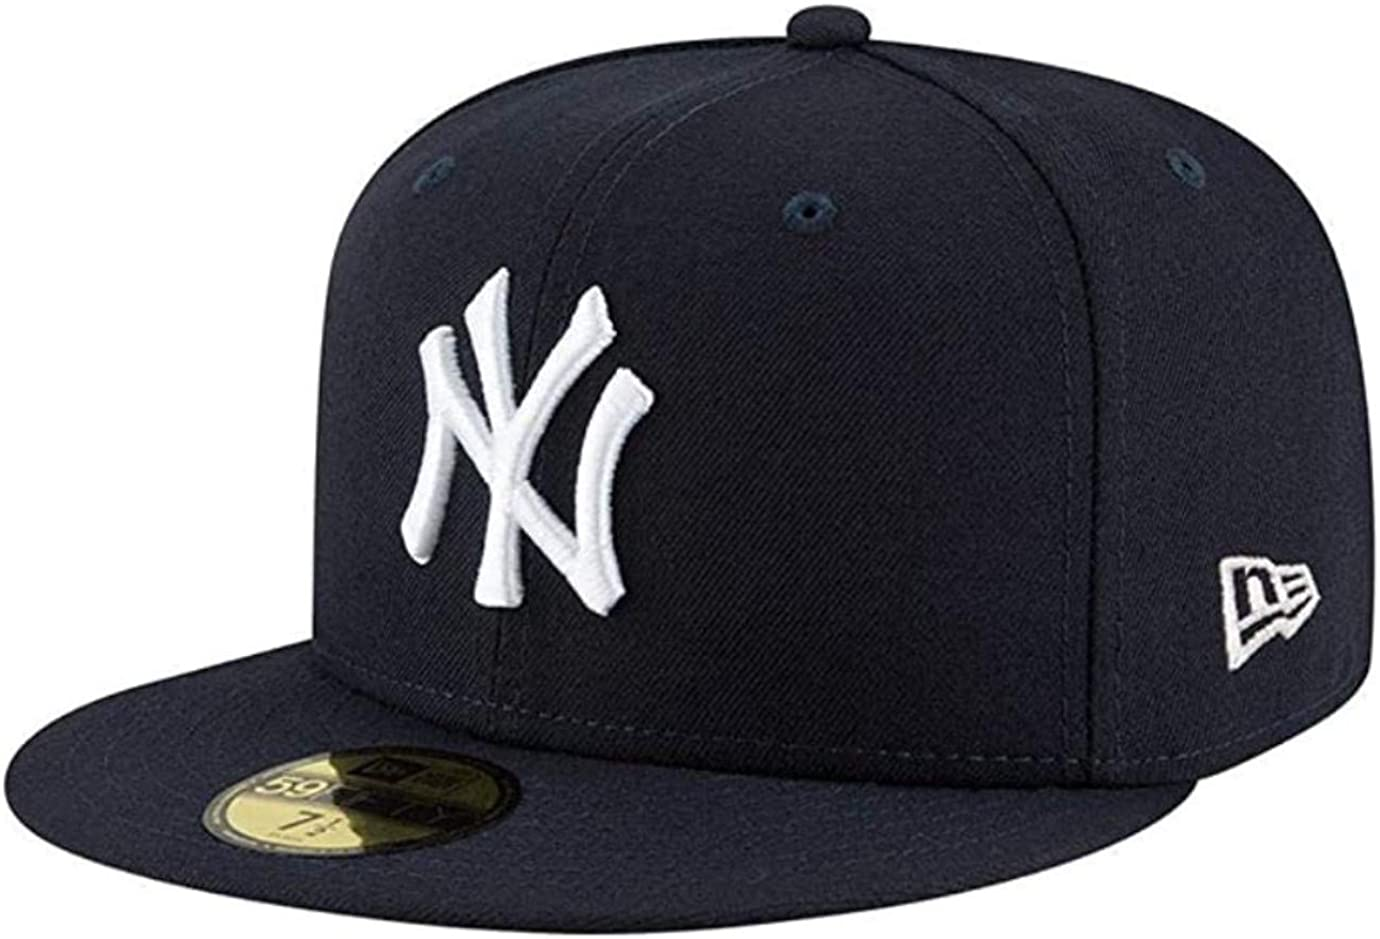 New Era Mens New York Yankees MLB Authentic Collection 59FIFTY Cap, Size 8 5/8 Navy